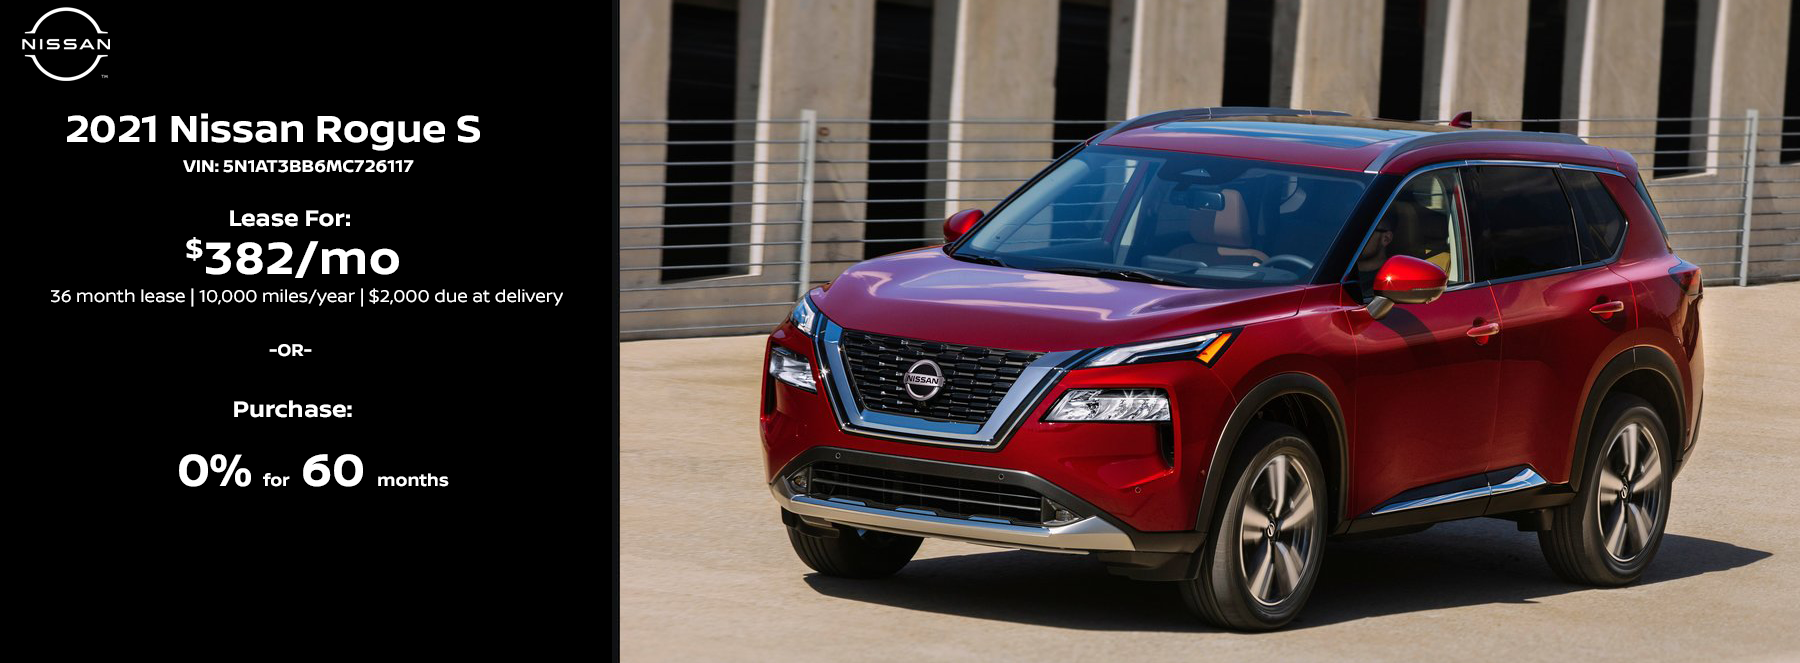 2021 Nissan Rogue Specials in Warsaw, Indiana